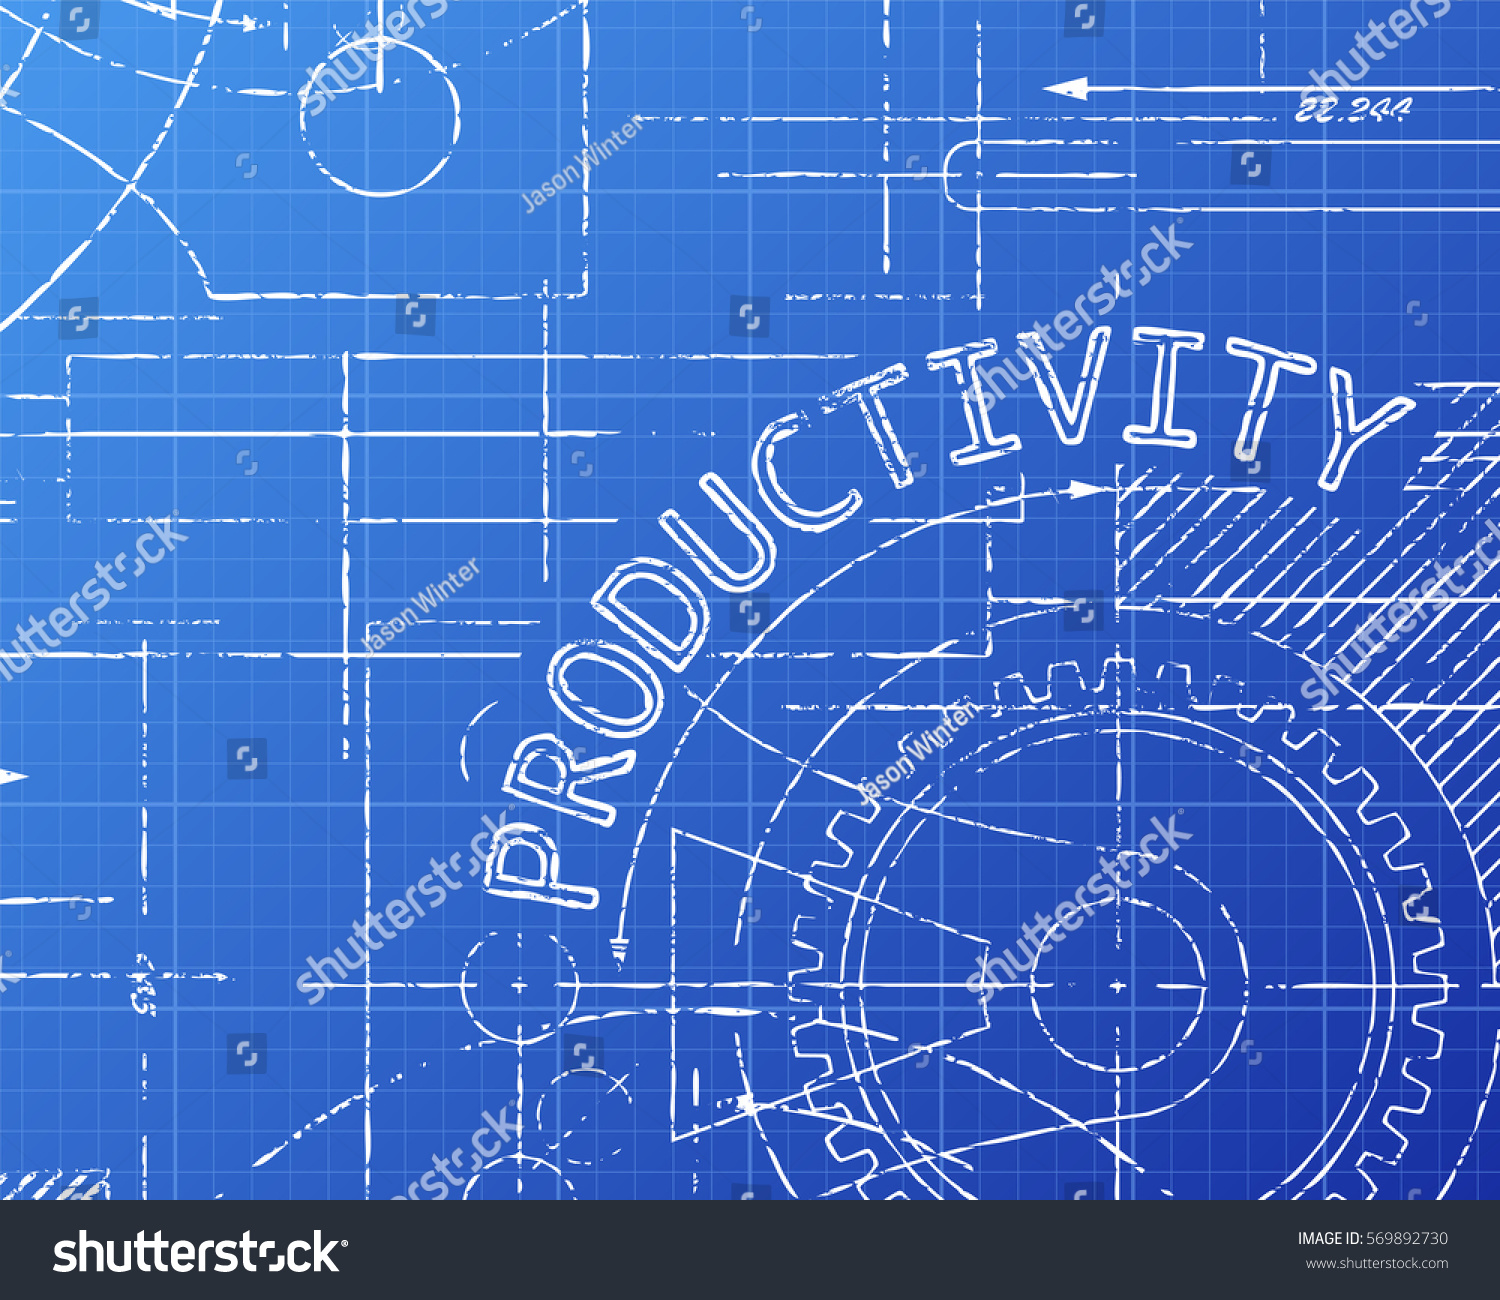 Productivity word on machine blueprint background stock illustration productivity word on machine blueprint background stock illustration 569892730 shutterstock malvernweather Images